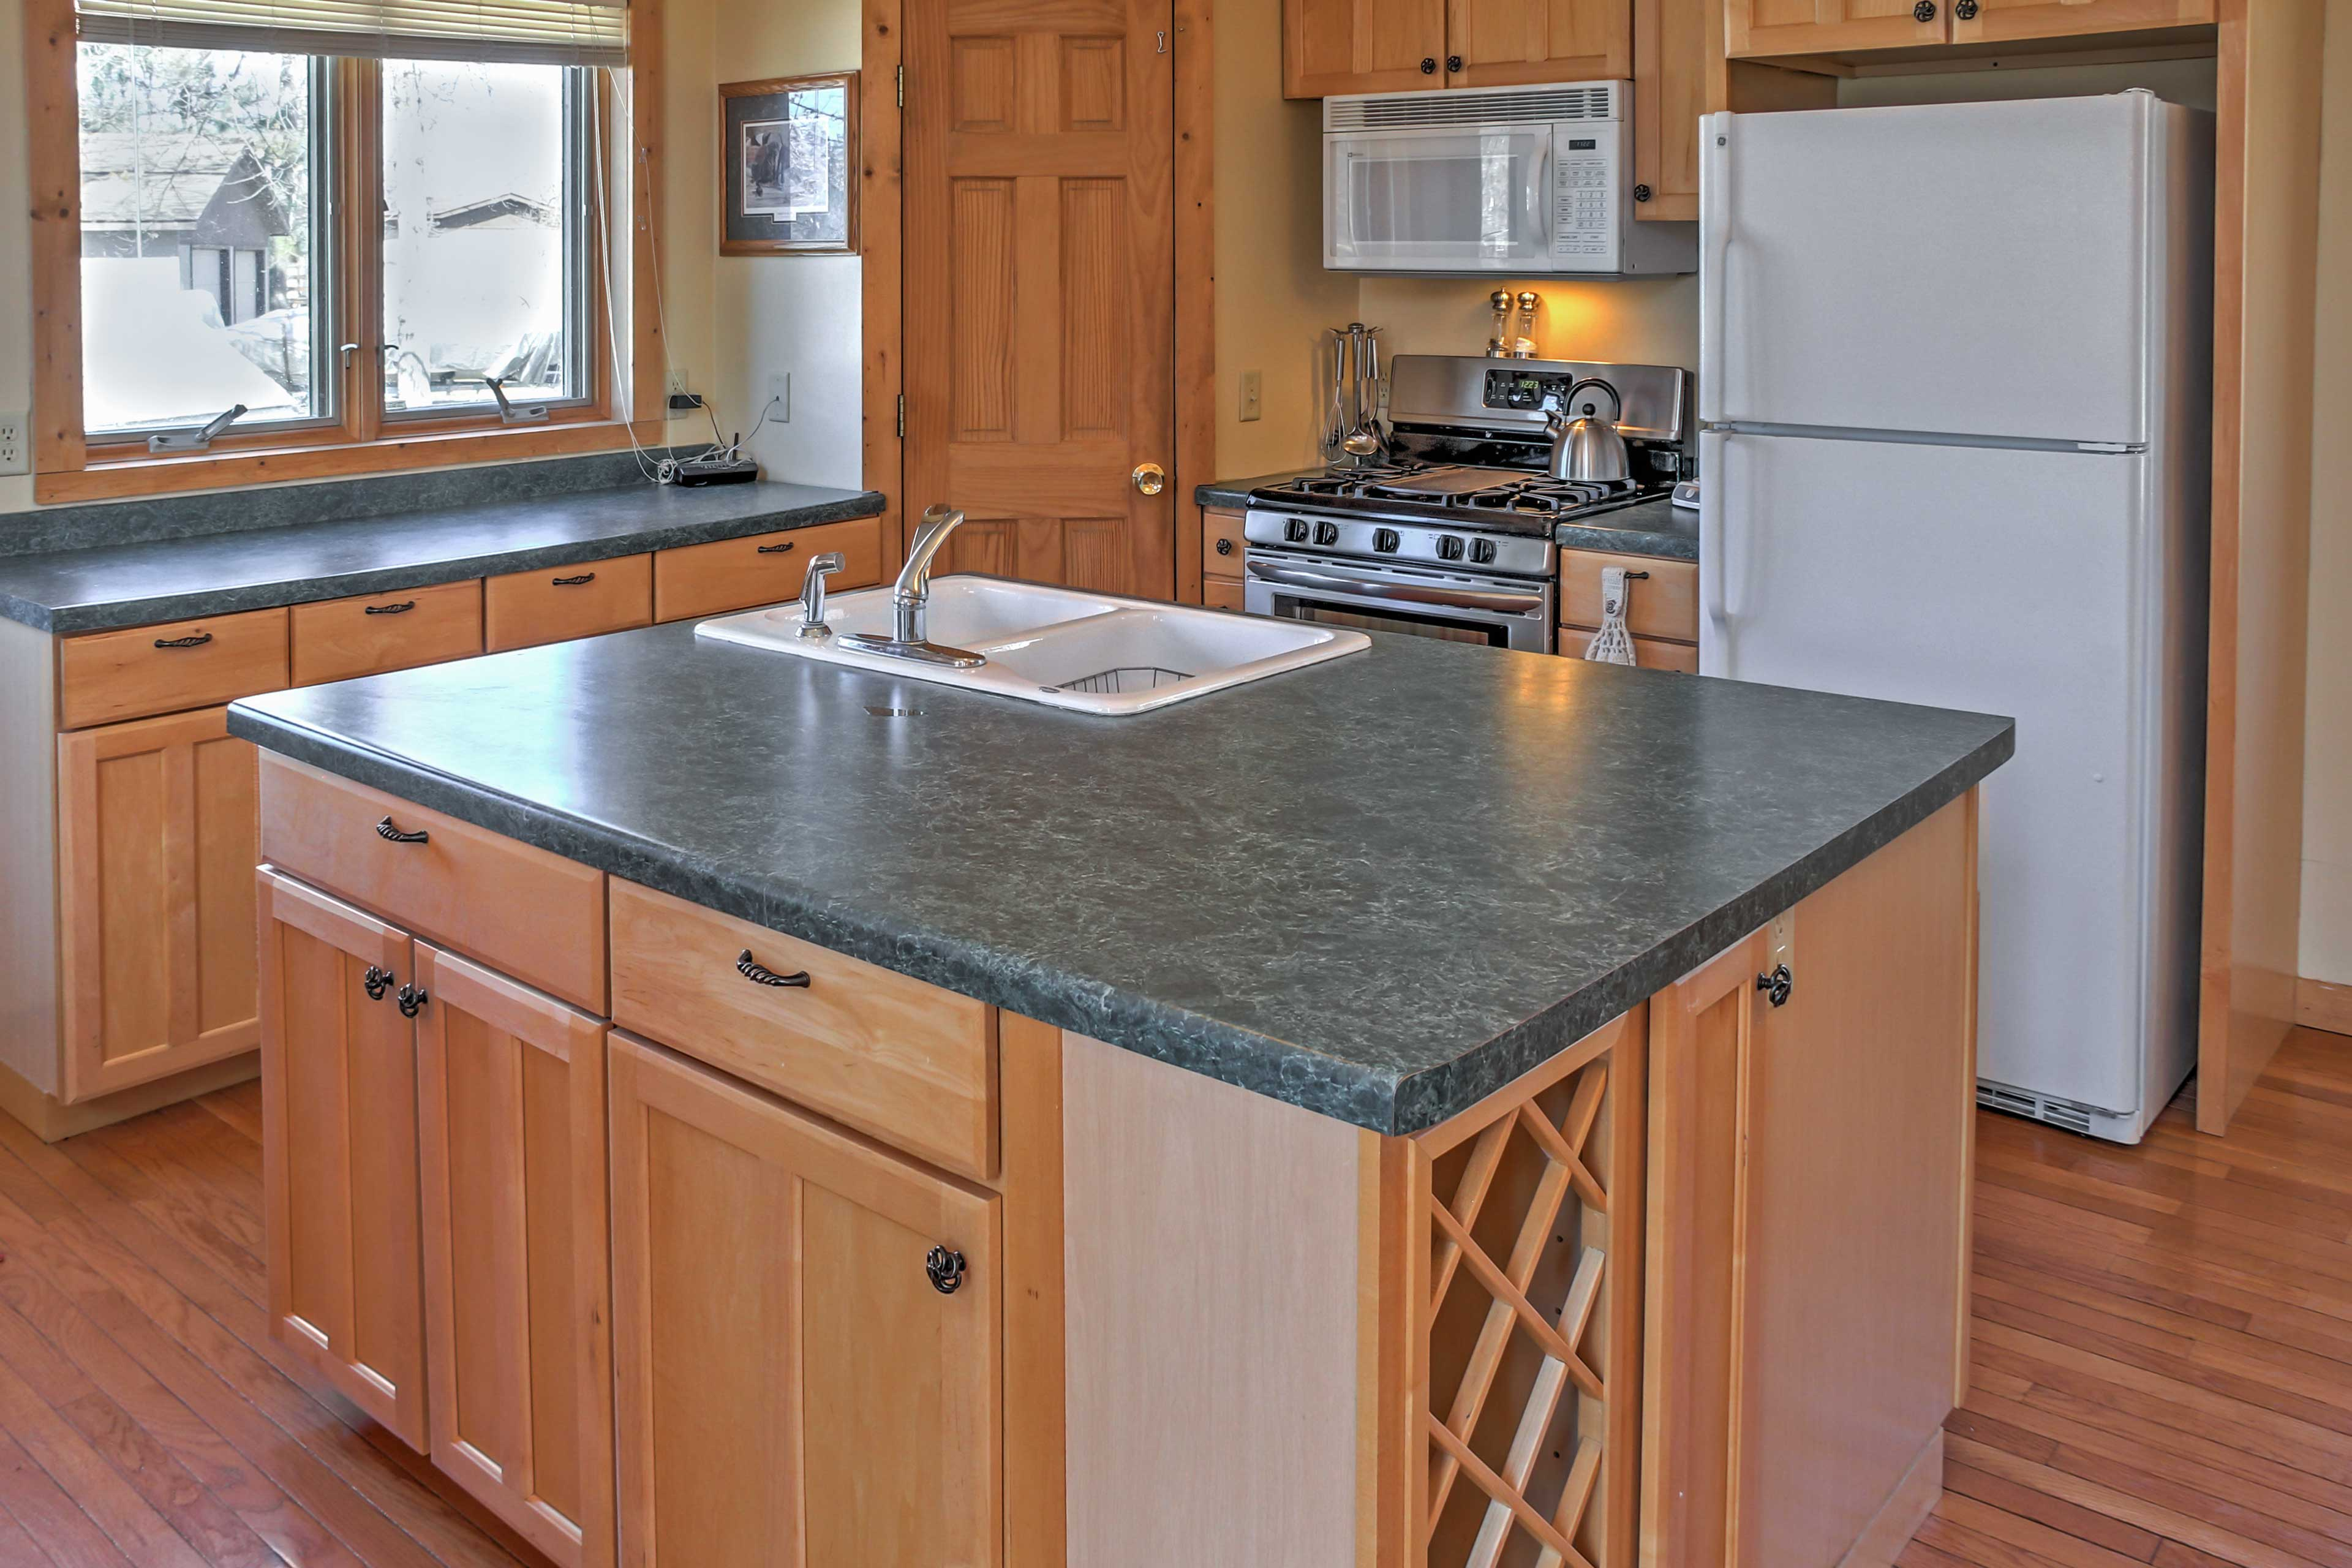 Whip up your favorite recipes in the fully equipped kitchen.